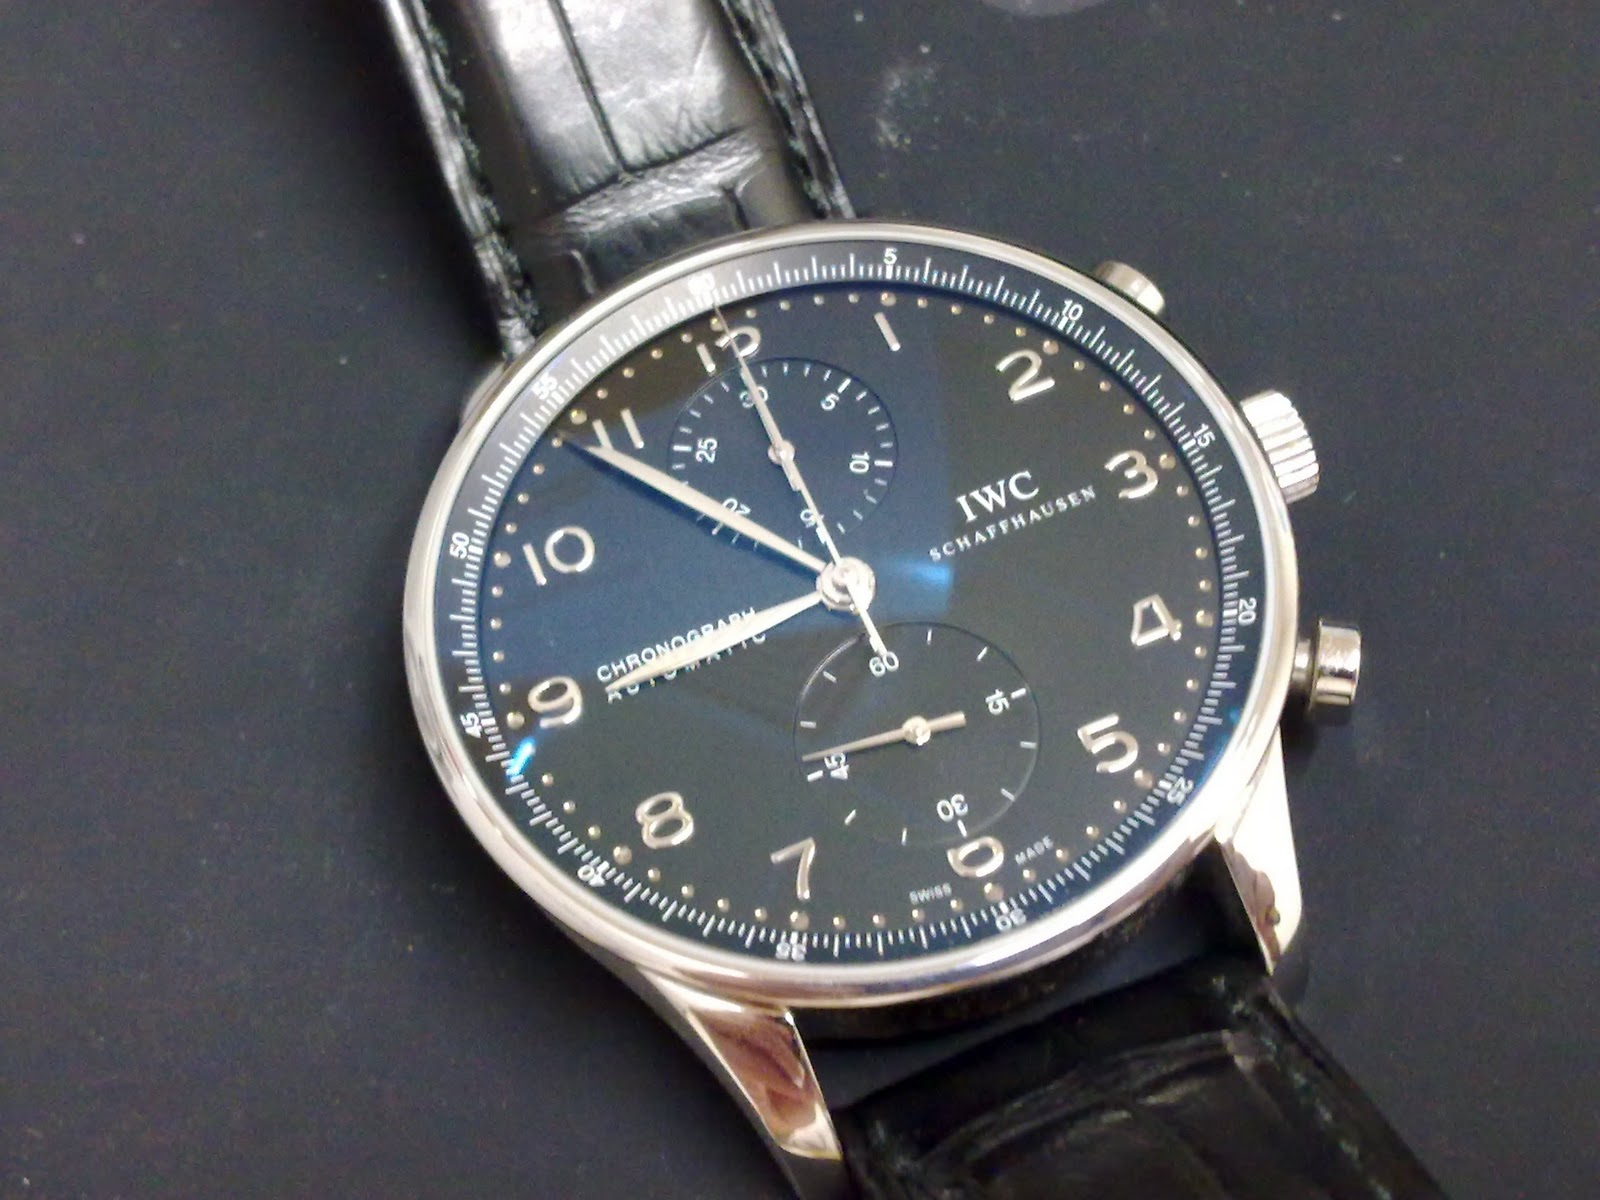 Iwc Watches Engineer